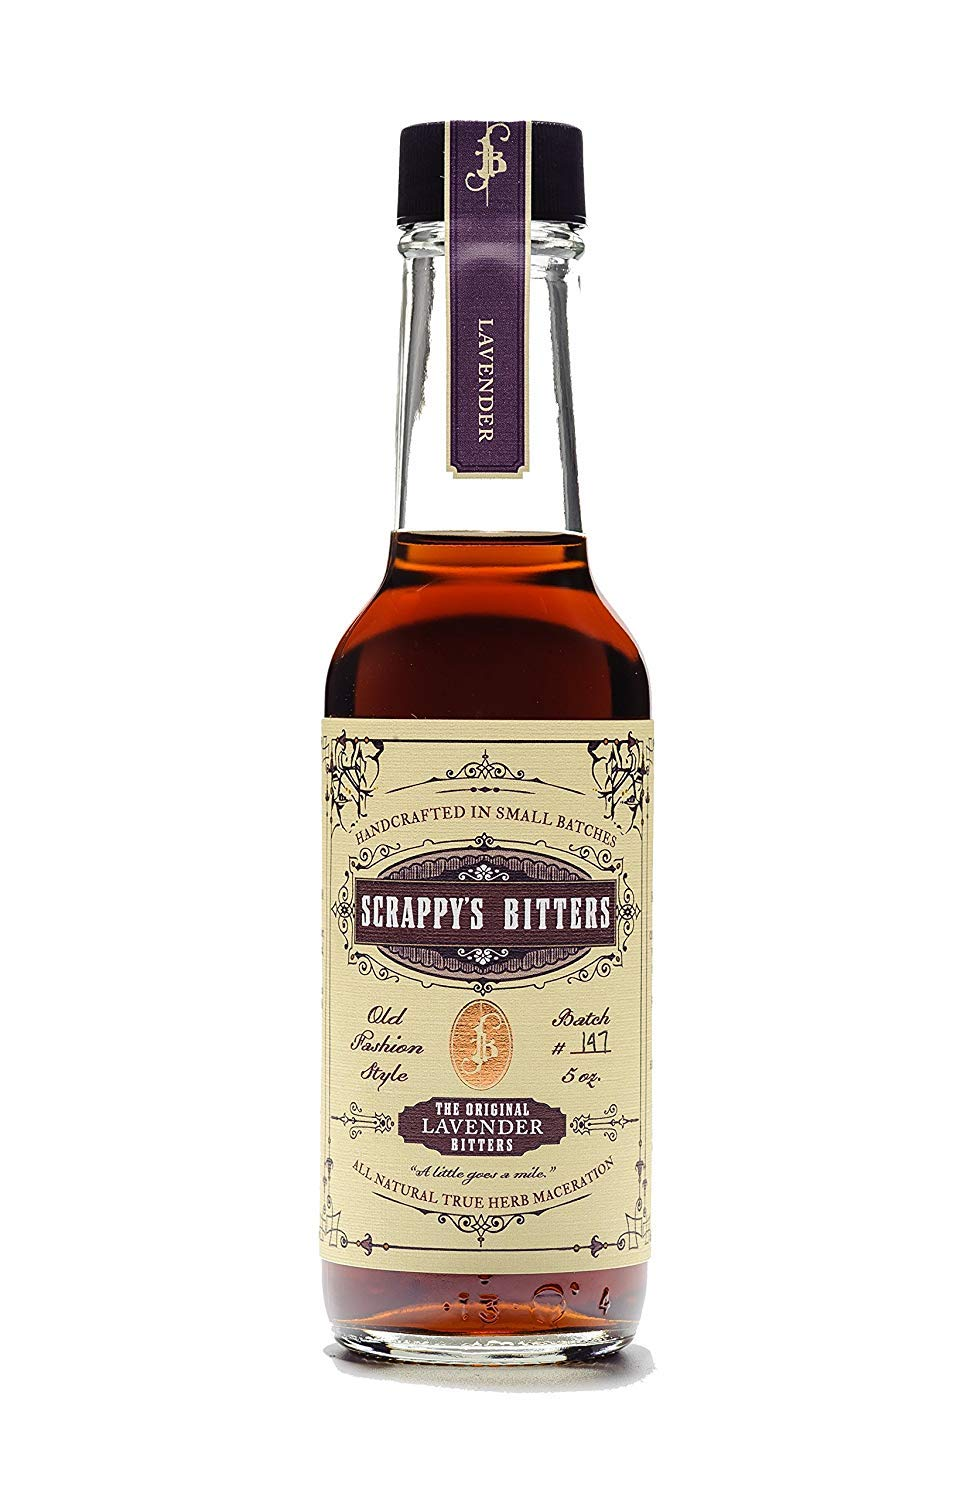 Scrappy's Bitters - Lavender outlet 5 Fi Organic Ounces Ingredients wholesale